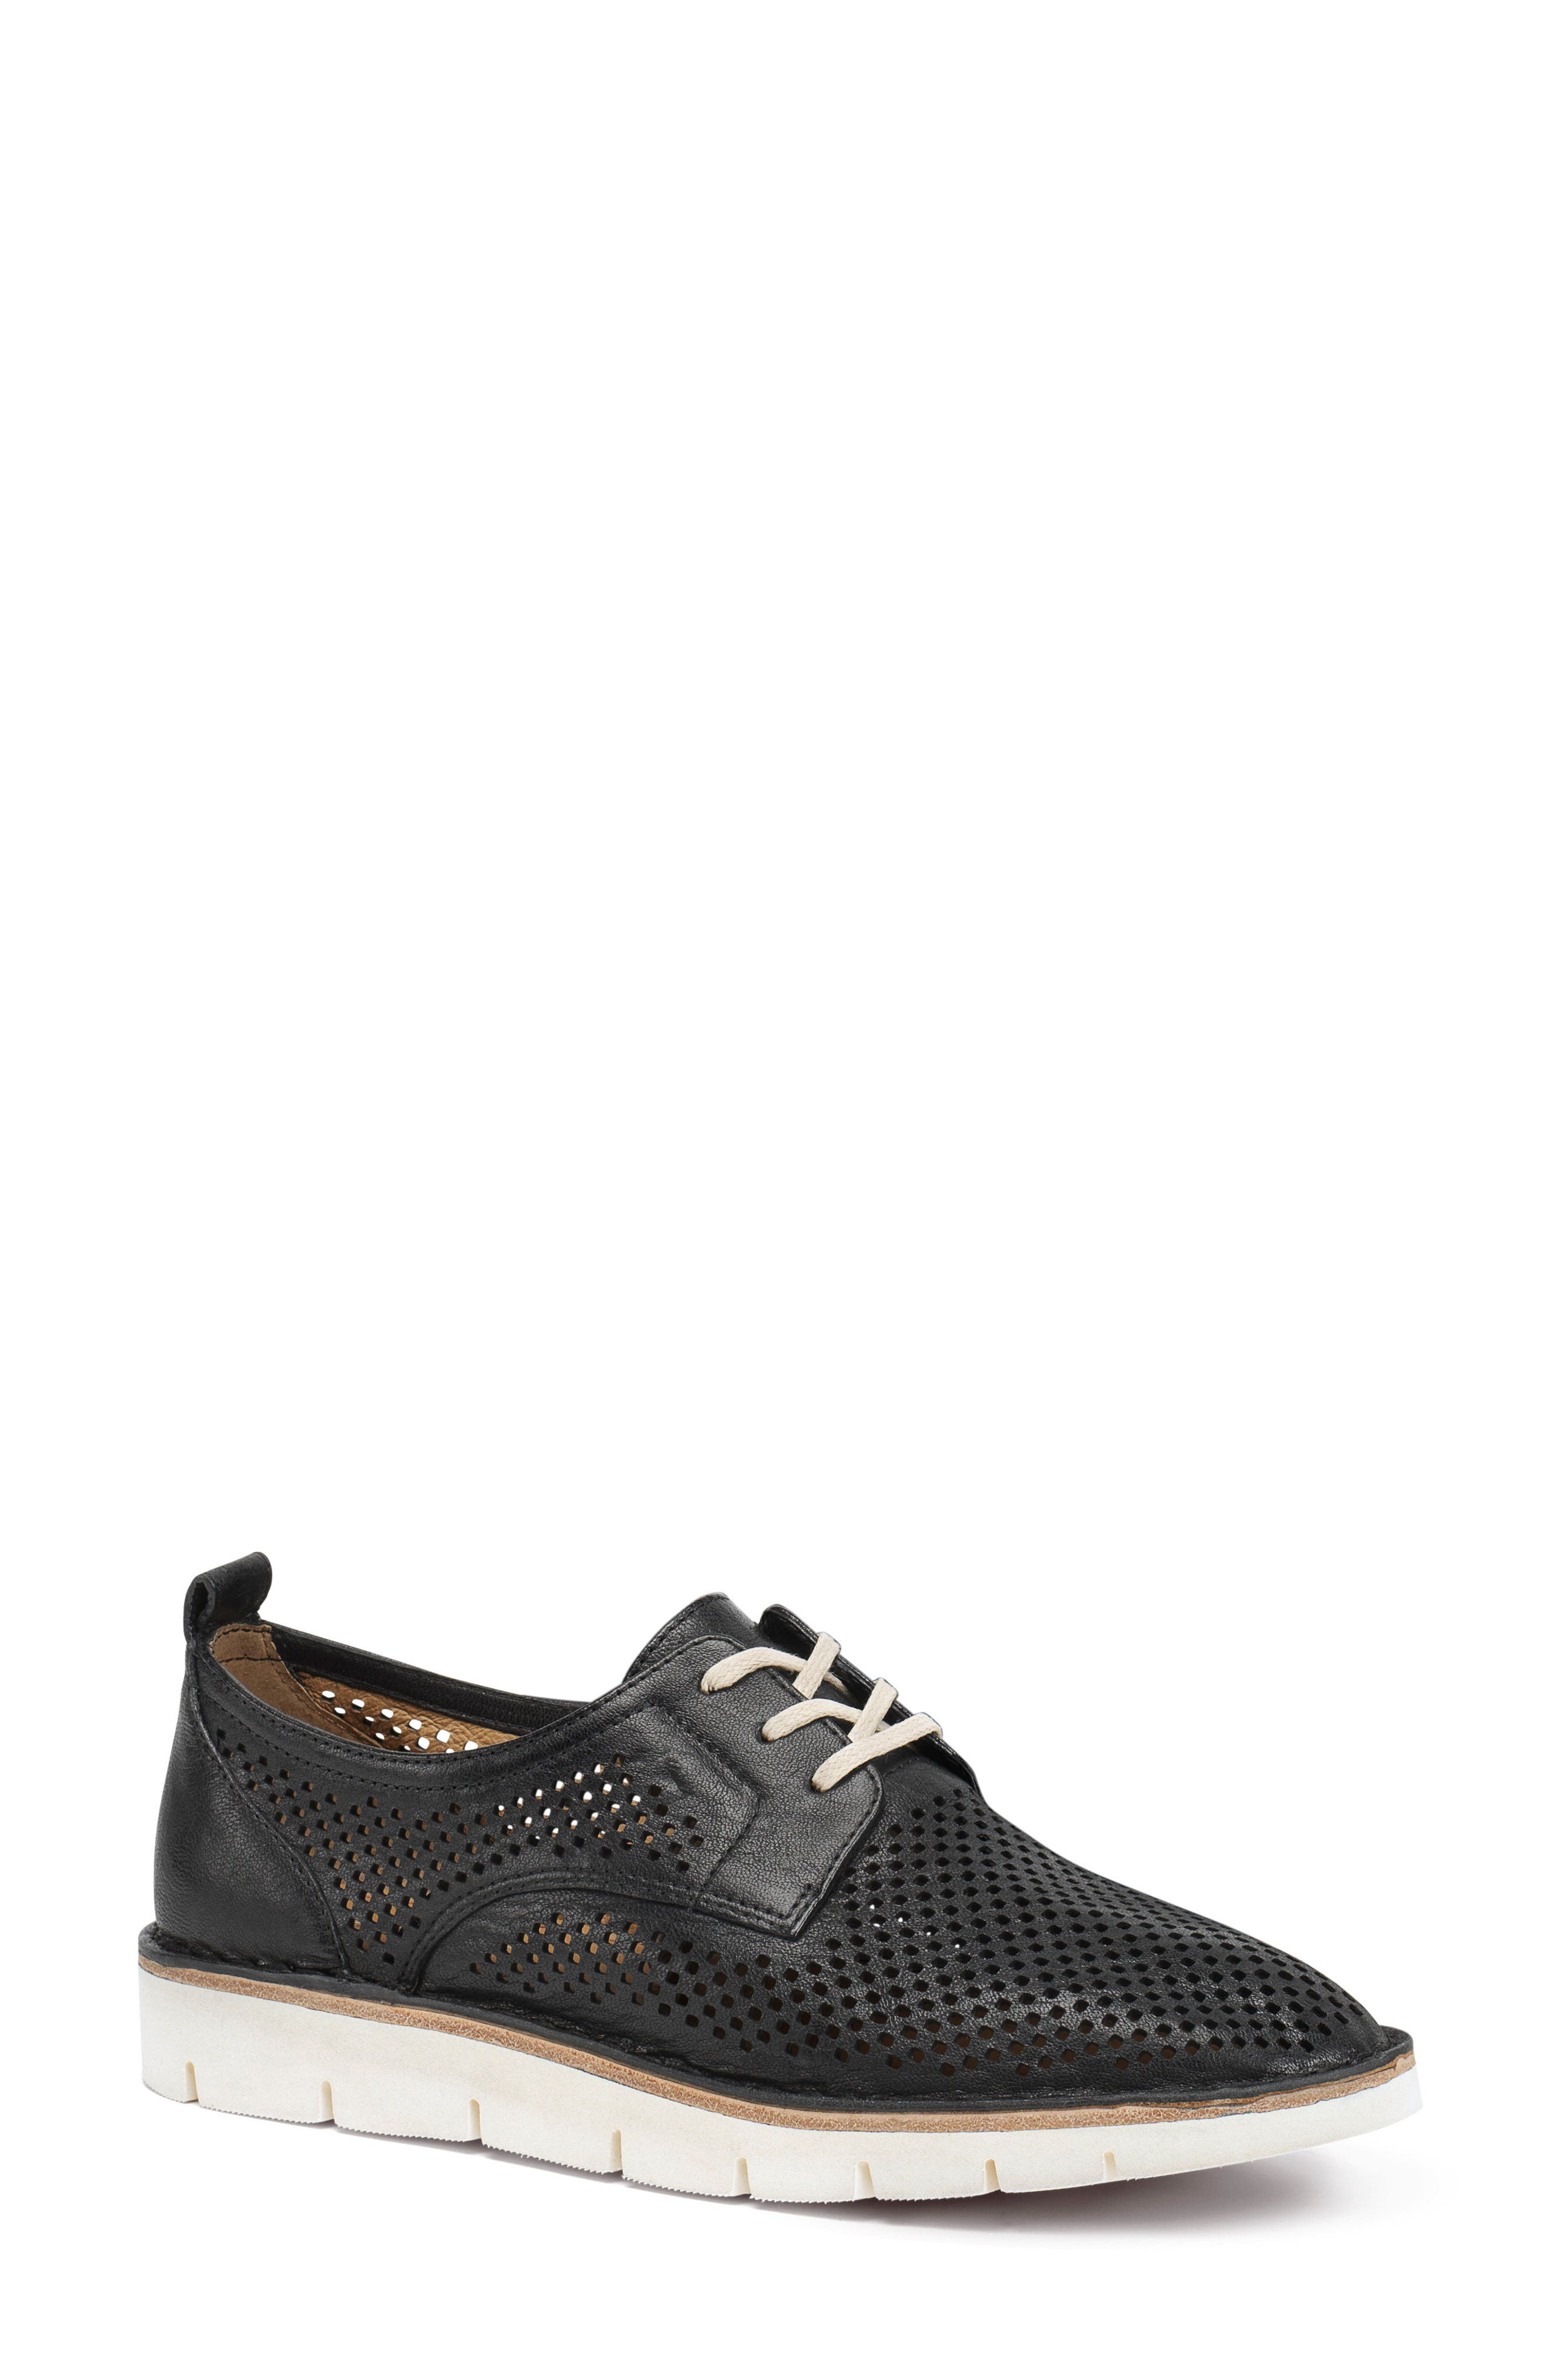 Lena Sneaker,                             Main thumbnail 1, color,                             BLACK LEATHER